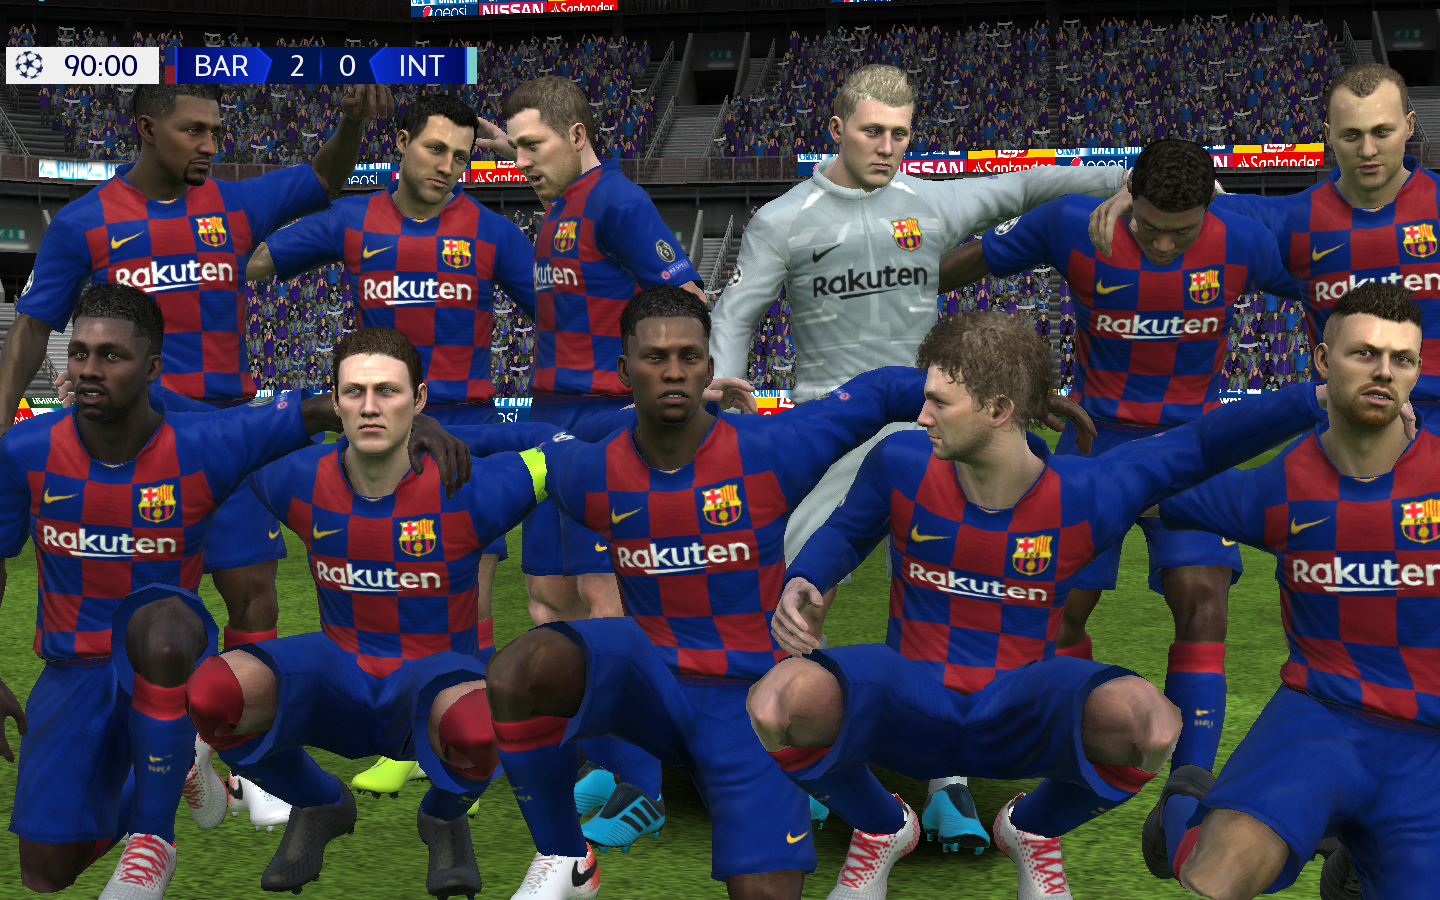 download FC Barcelona image FIFA Manager Season 2020 mod for 1440x900